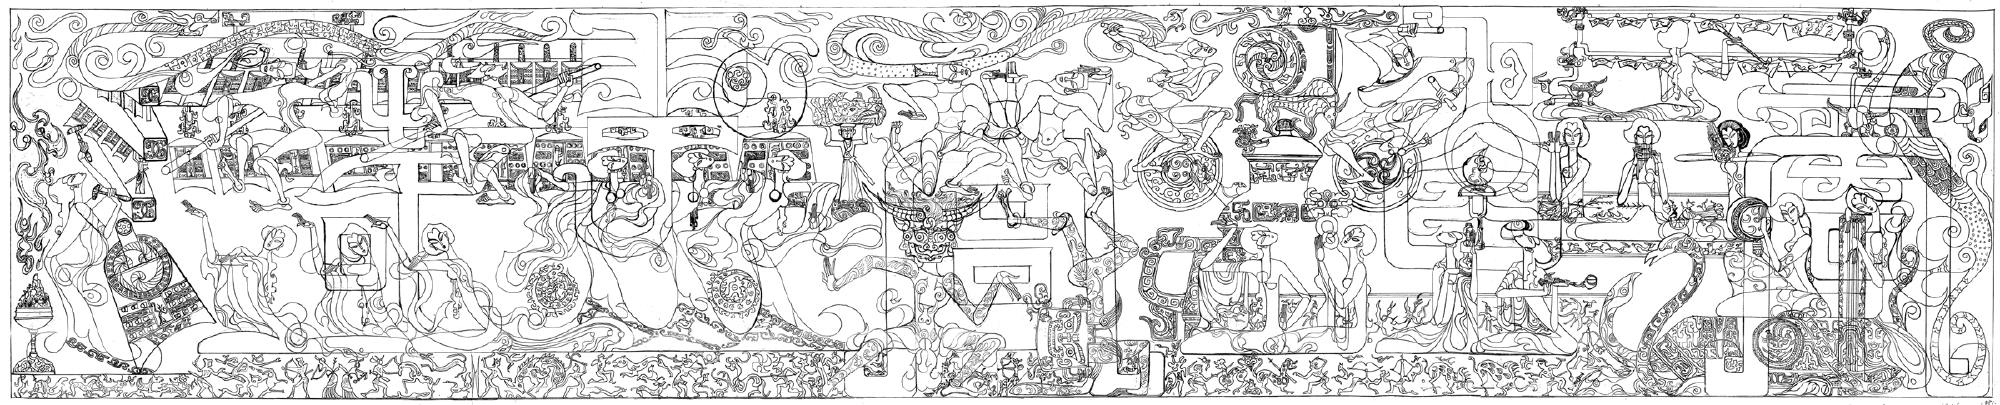 Line Art Mural : Magnolia editions hung liu at mills college art museum